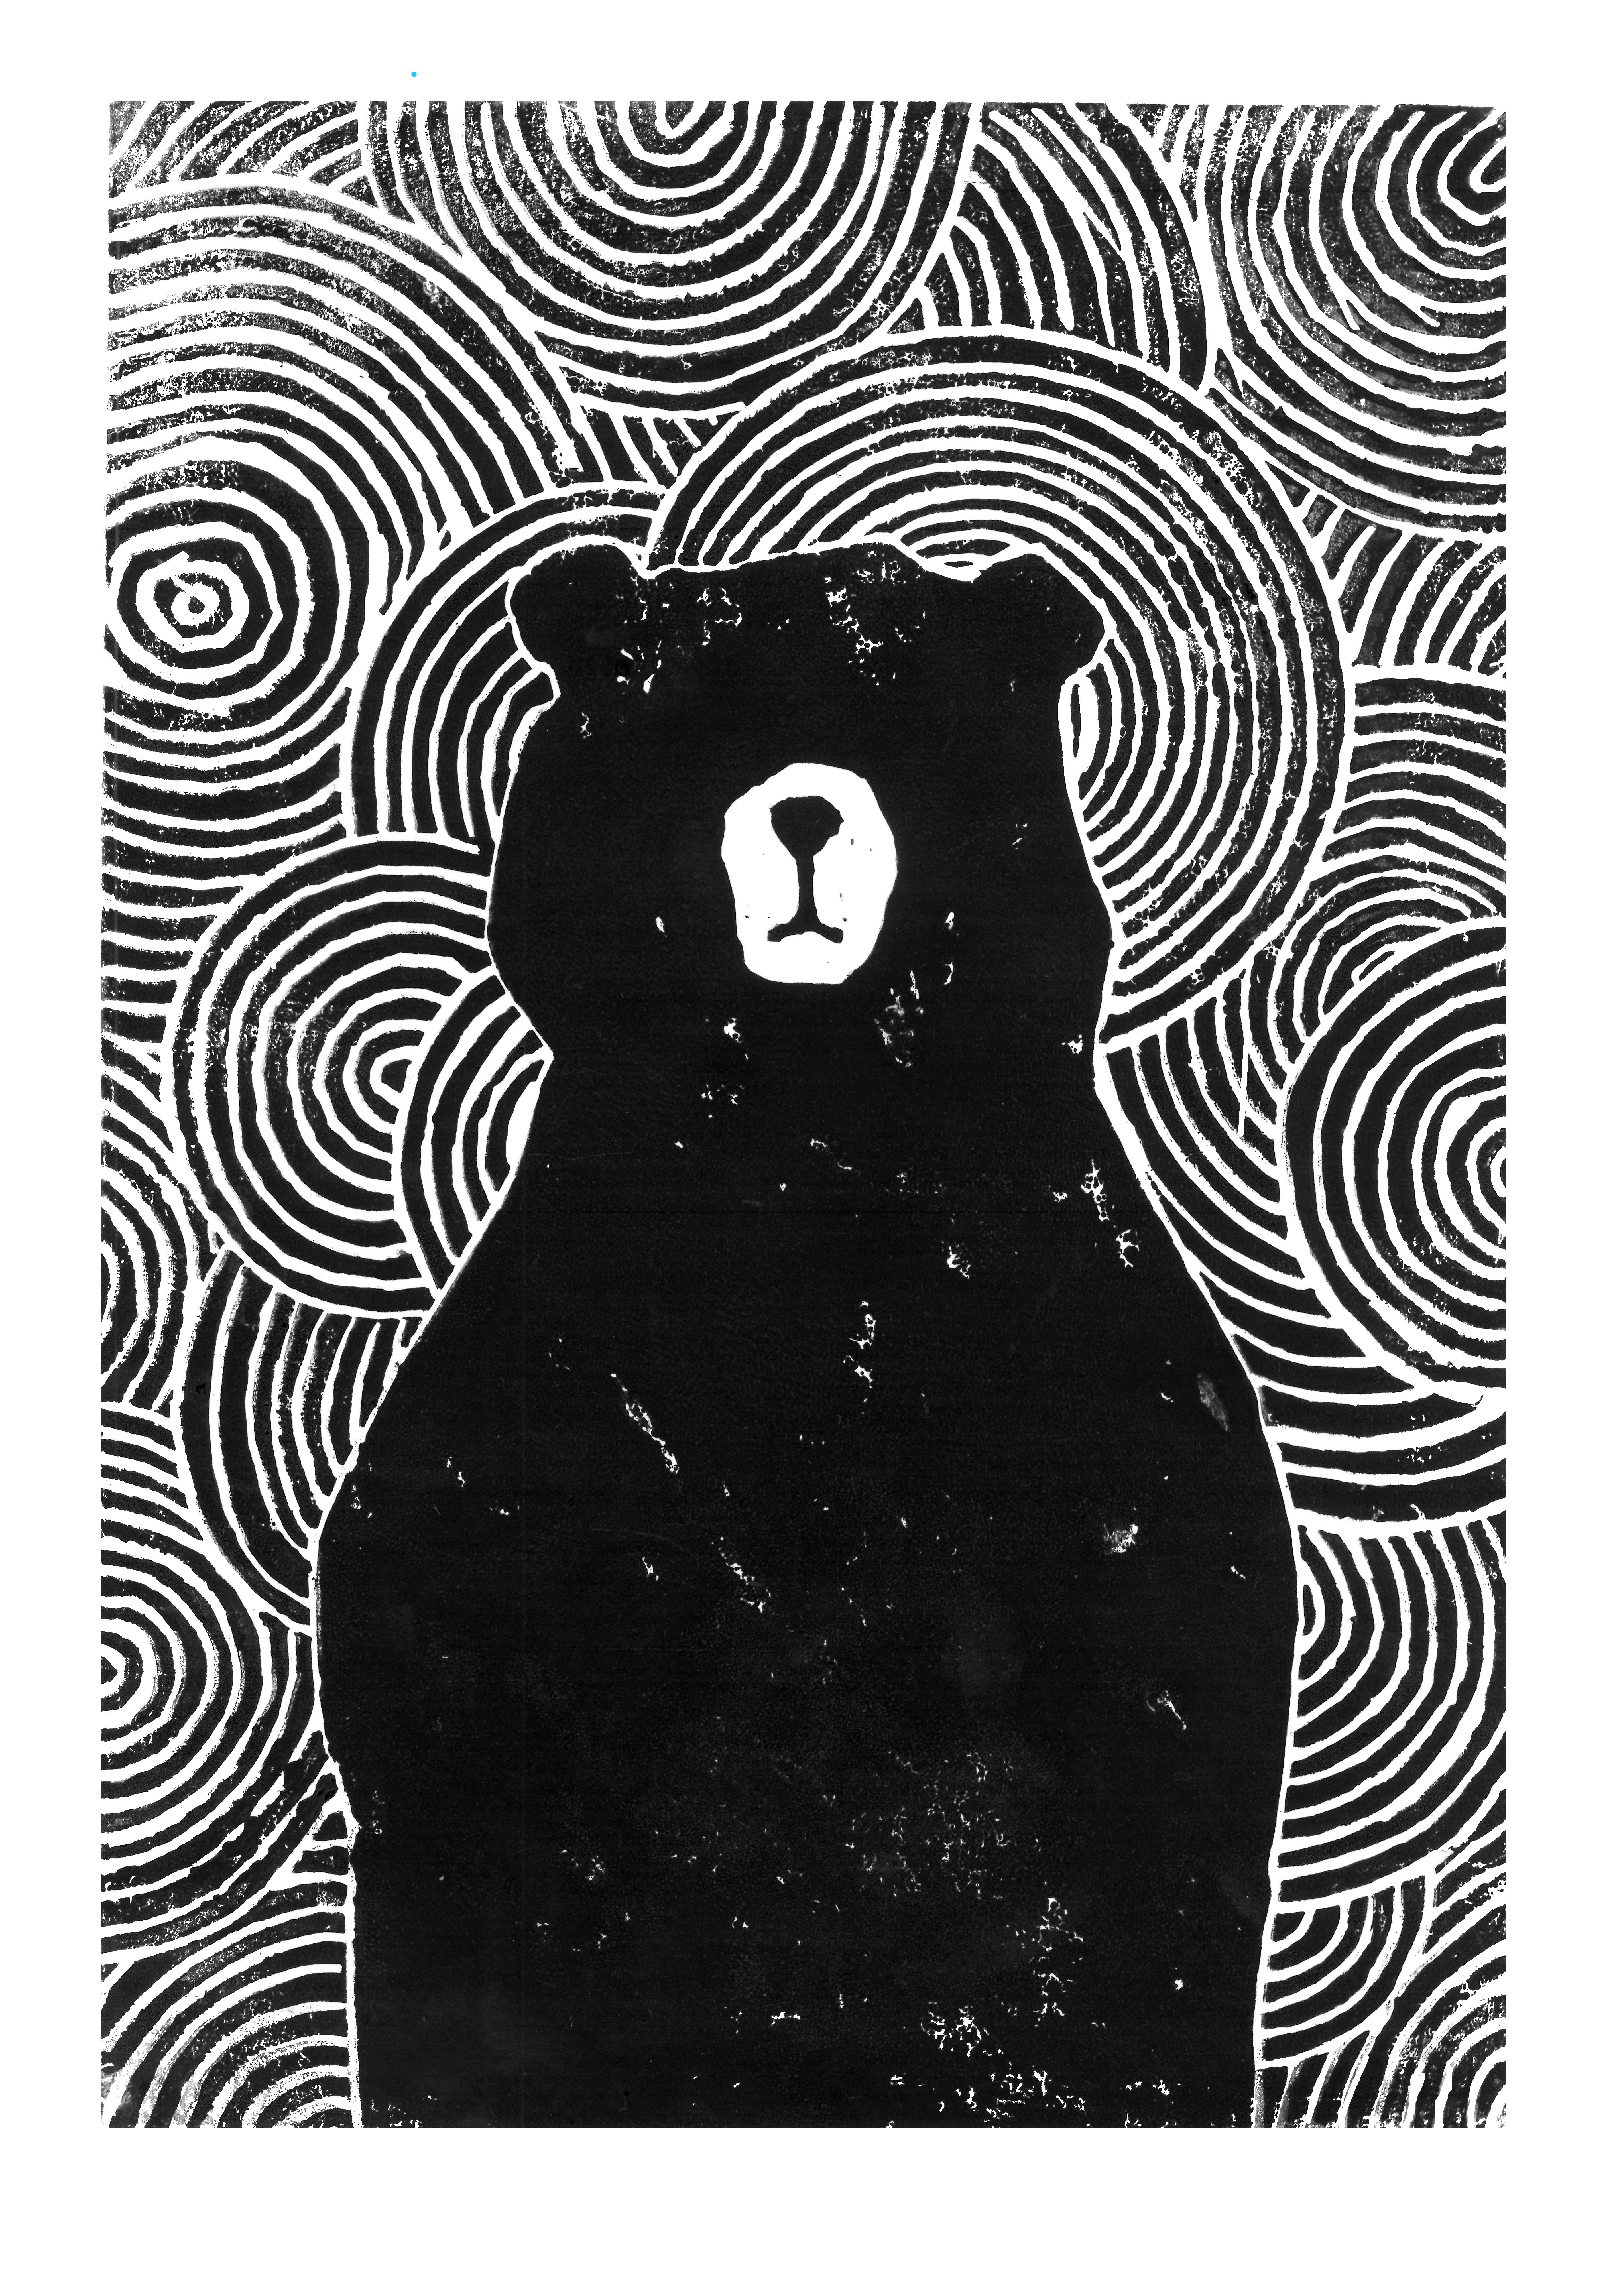 Cool Black And White Posters Lino Cut Of A Black Bear James Moffitt Woodcut Prints